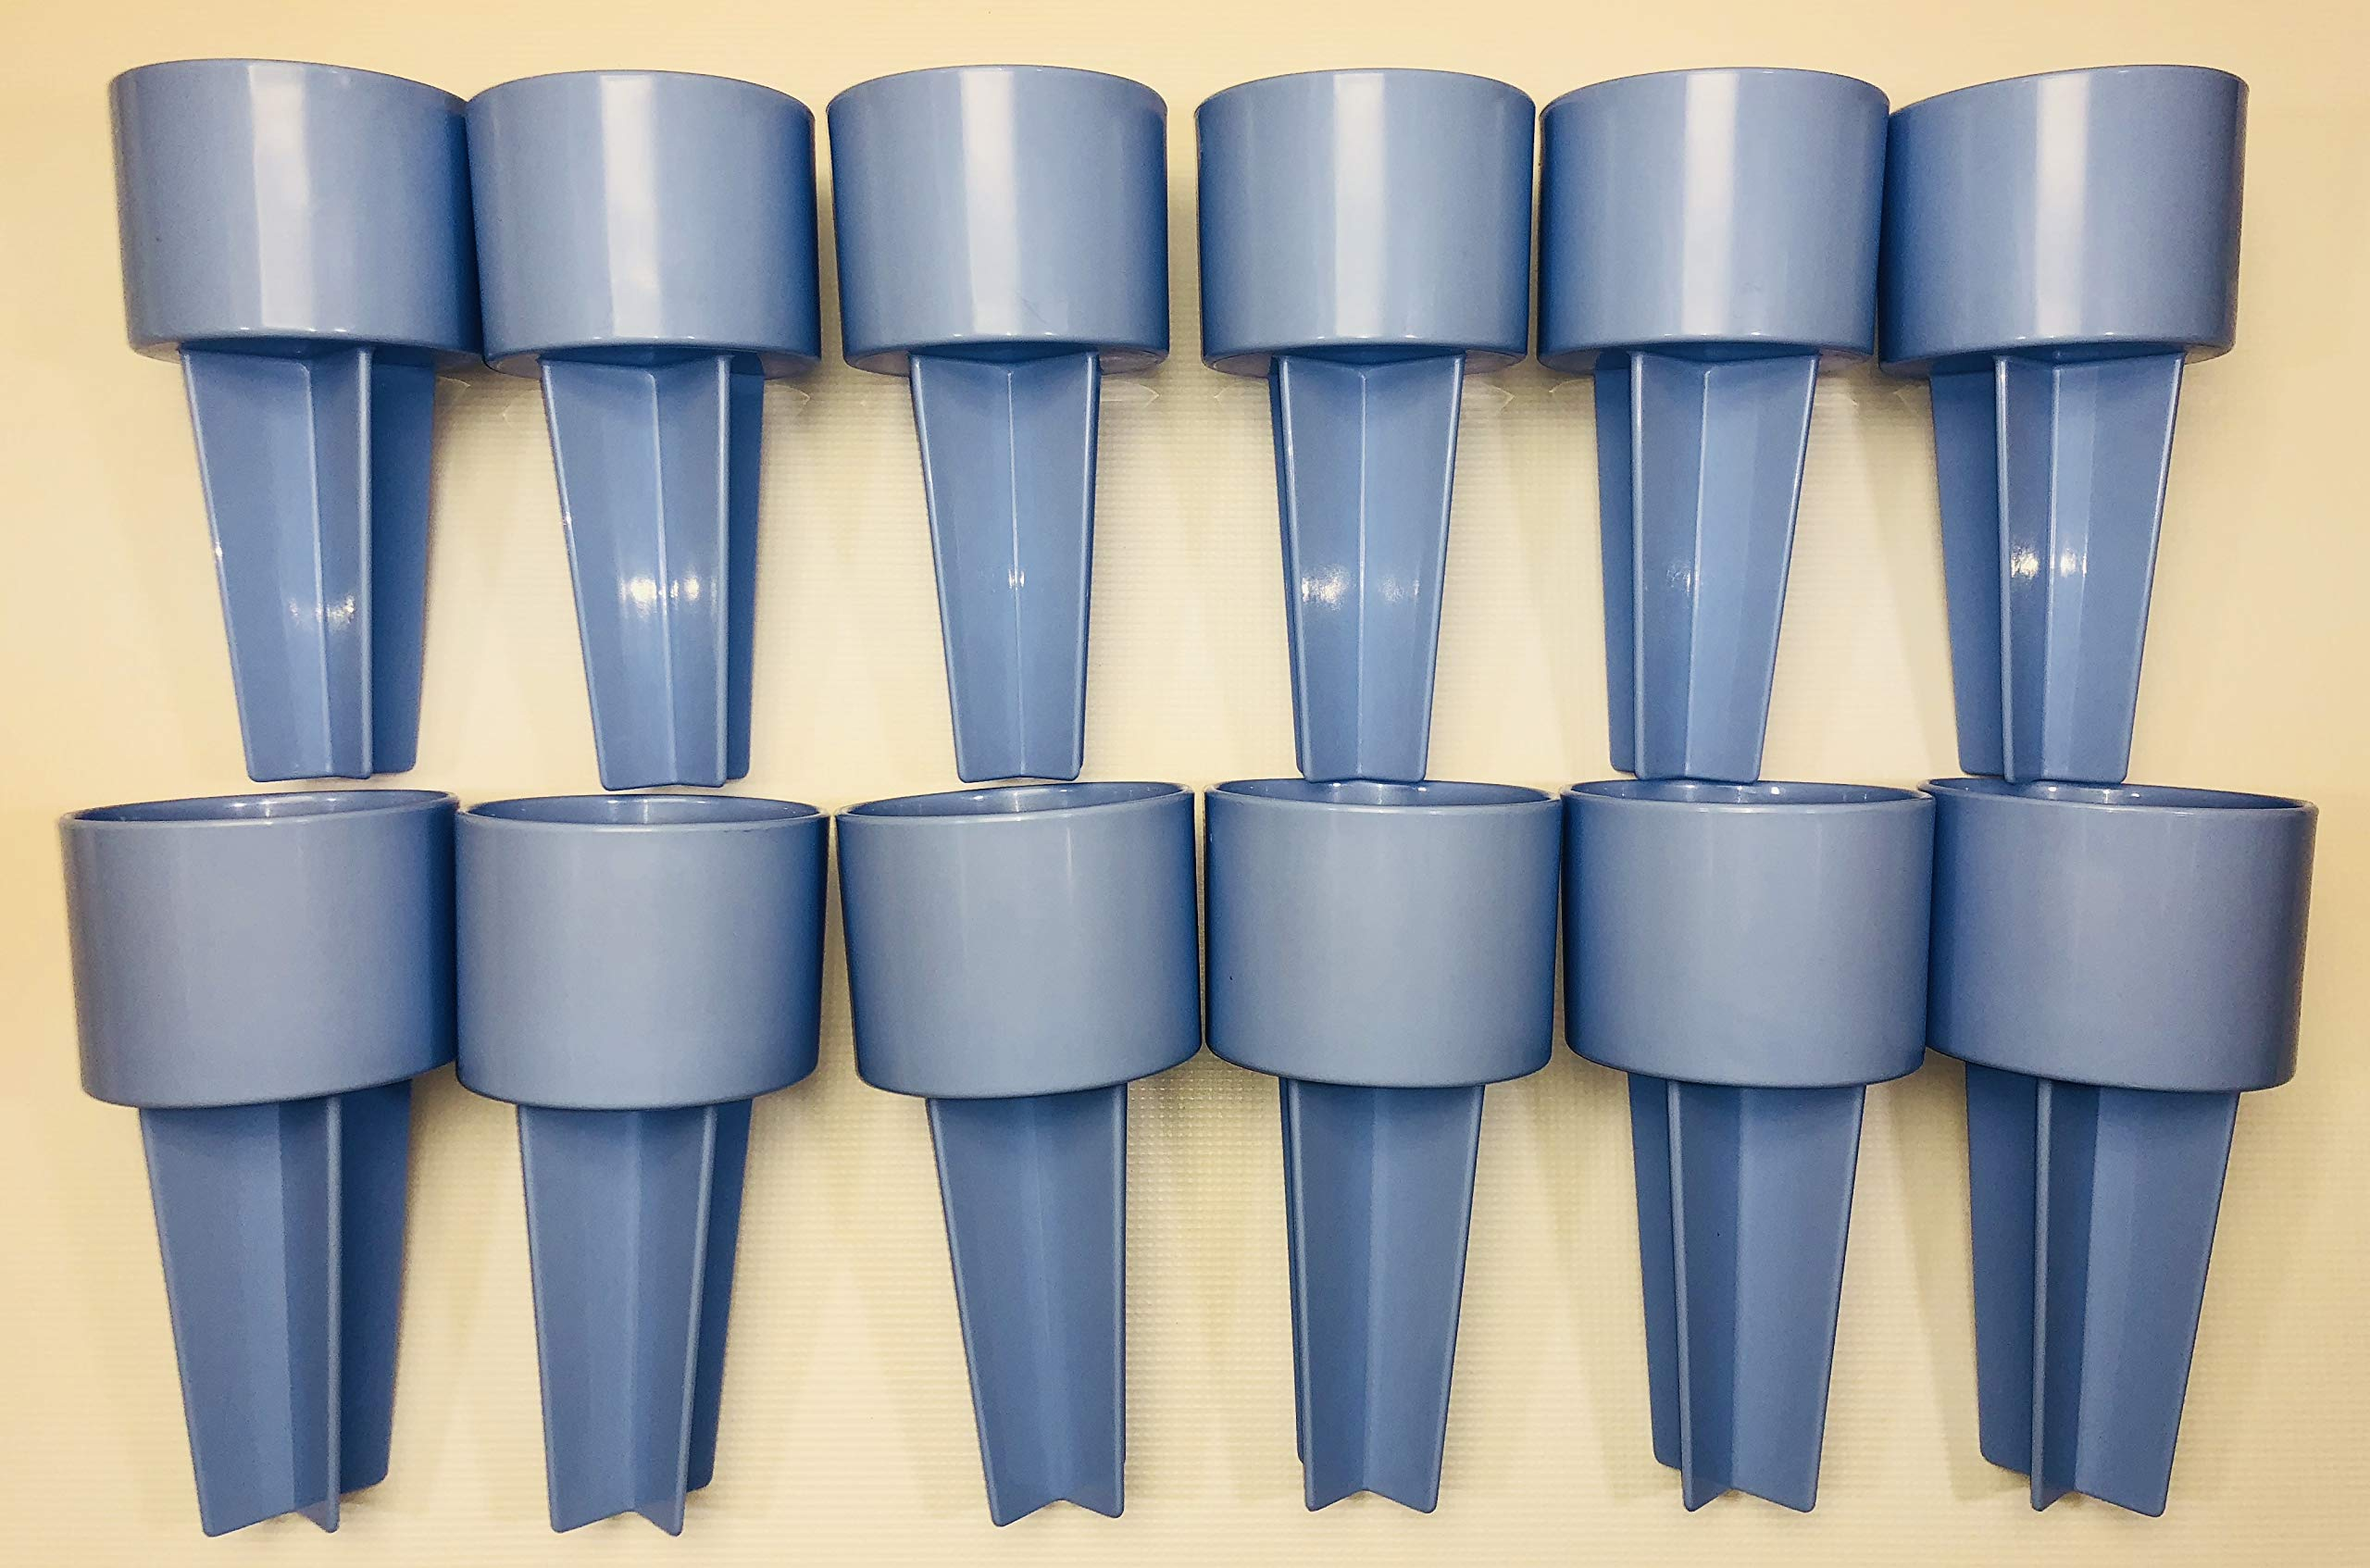 SPIKER Lifestyle Holder: for the beach & sofa: holds drinks & more. Set of 12 in CAROLINA BLUE color, decorate as you wish